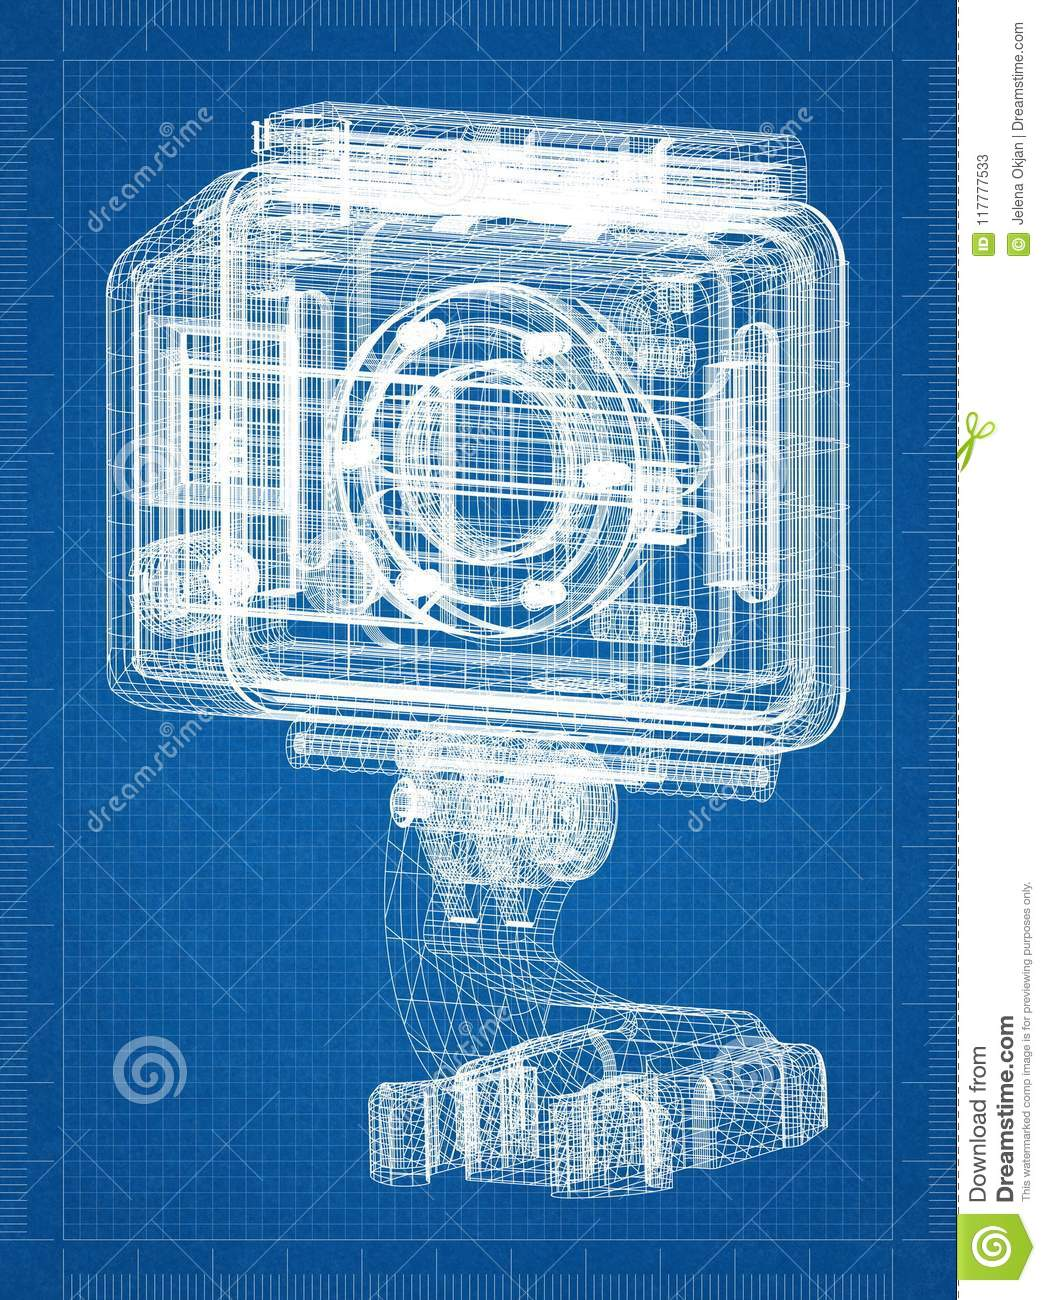 Action camera architect blueprint stock illustration illustration download action camera architect blueprint stock illustration illustration of drawing engineering 117777533 malvernweather Image collections